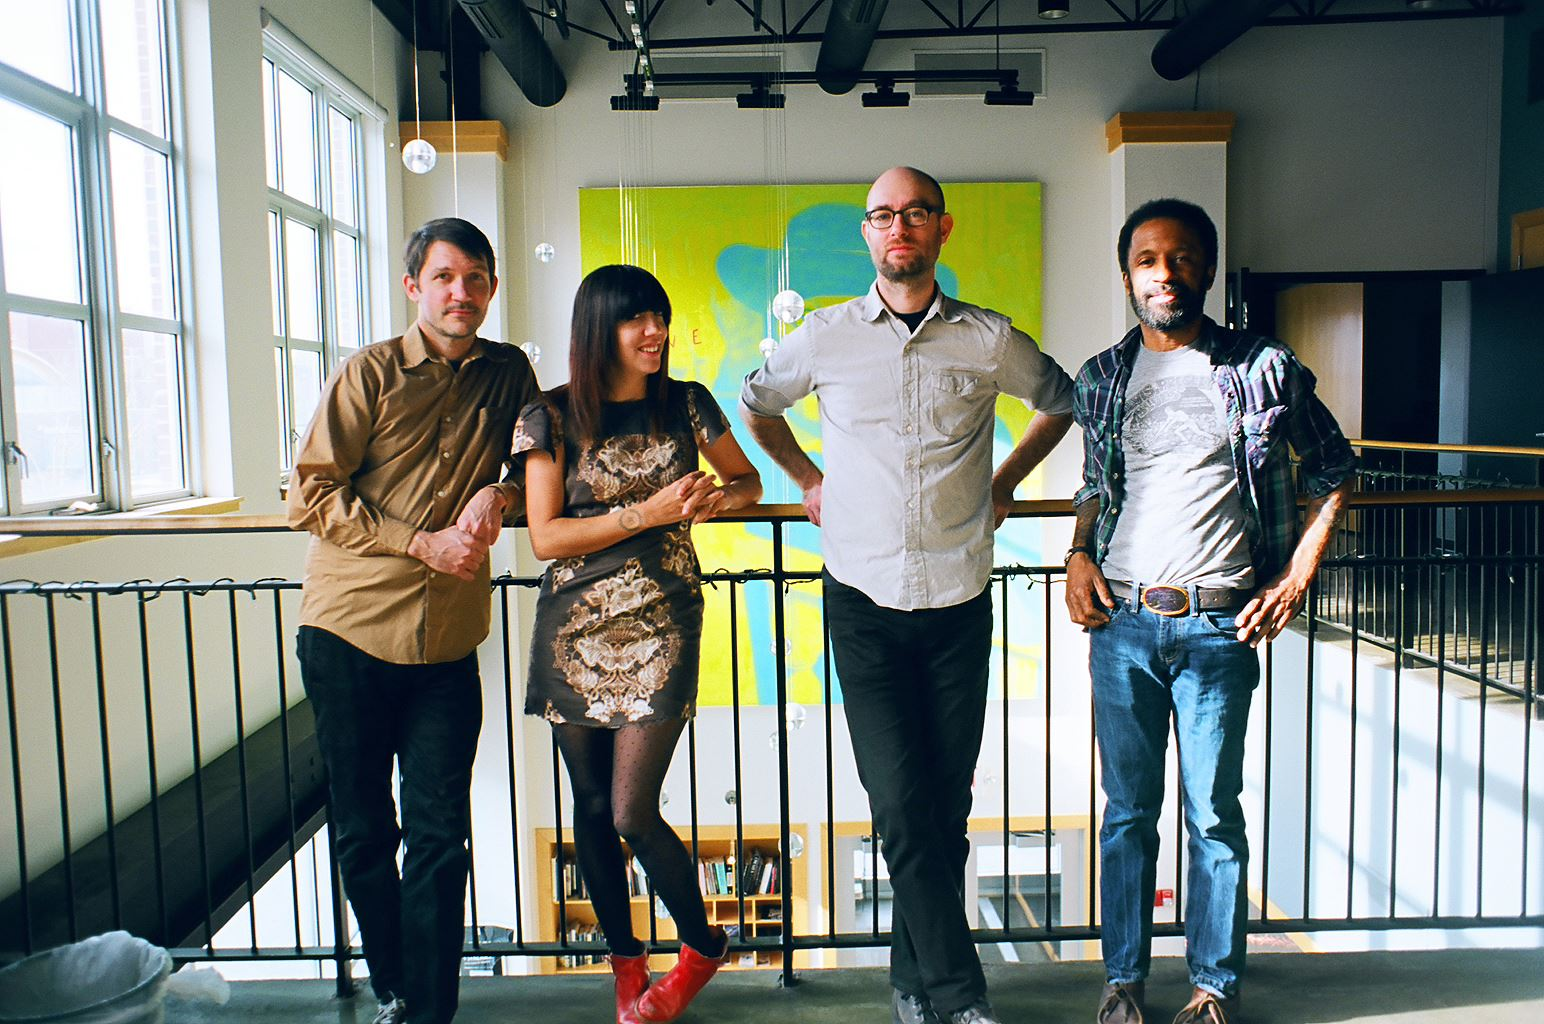 Omaha's The Good Life will perform at Mohawk Place on Nov. 14.